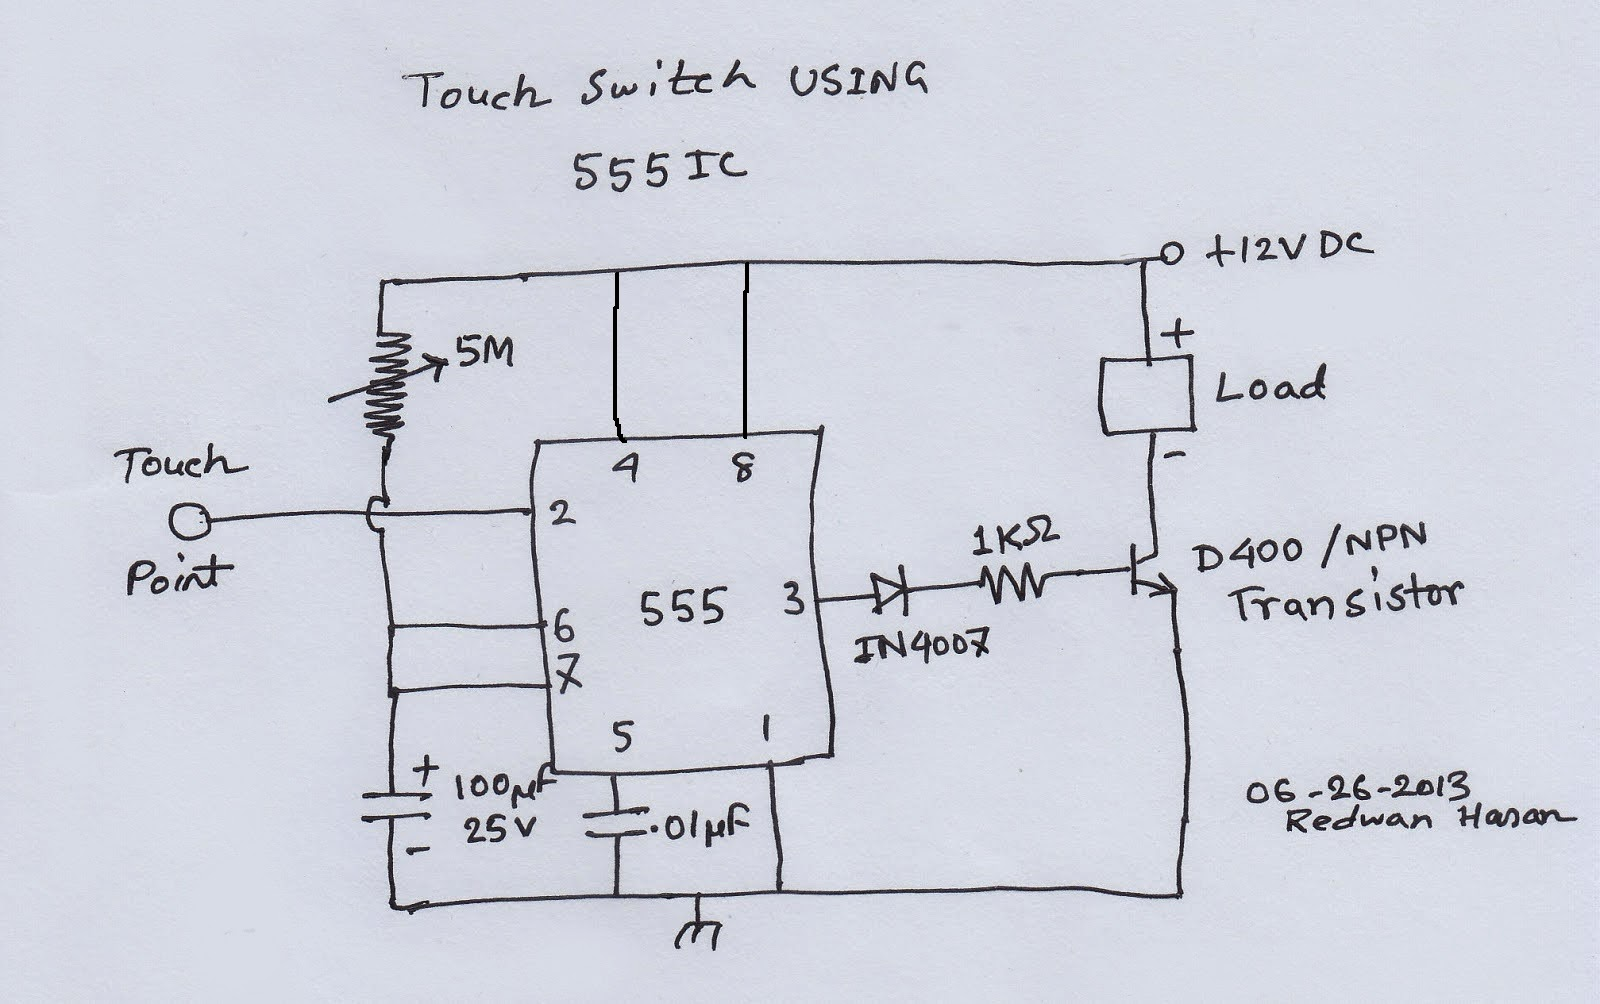 Scavenger\'s Blog: Touch Switch Using 555 IC - Hobby Electronics